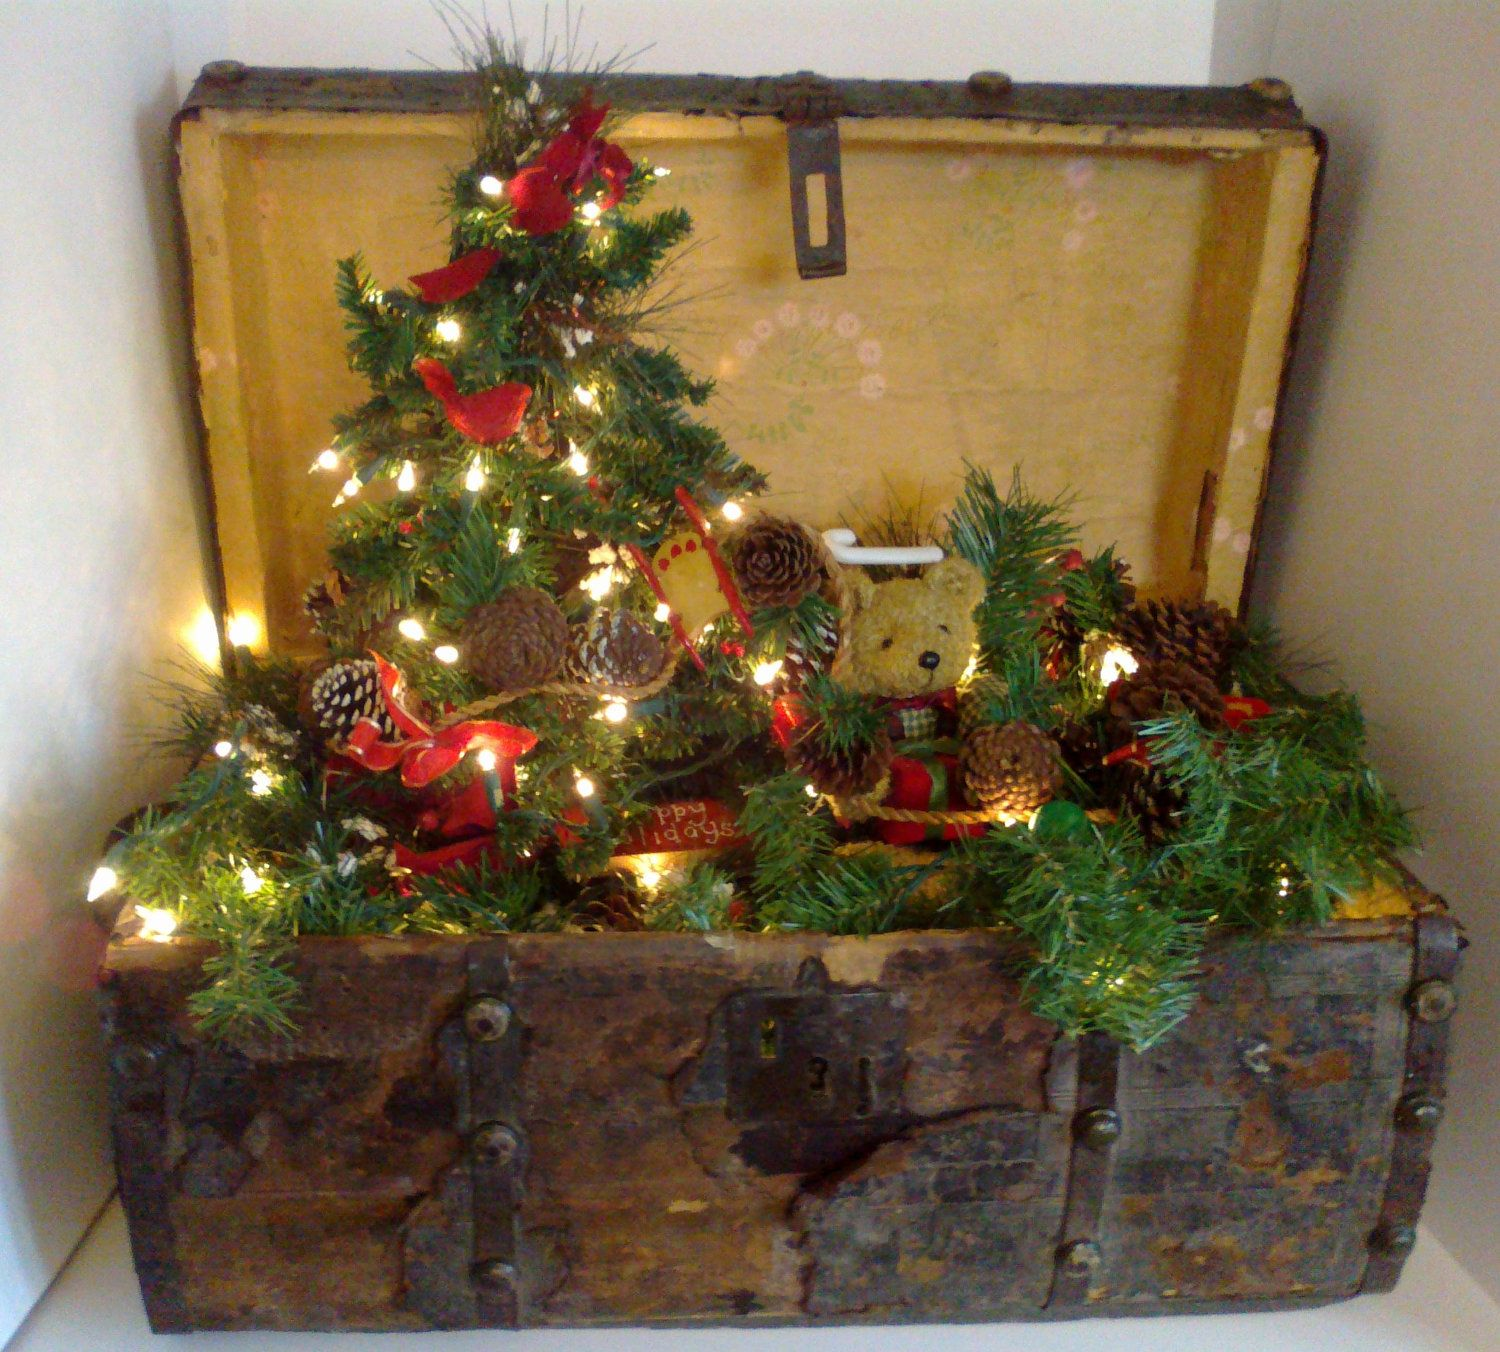 Primitive christmas ideas to make - Antique Christmas Trunk With Christmas Tree And Lights Cute Idea Must Do This